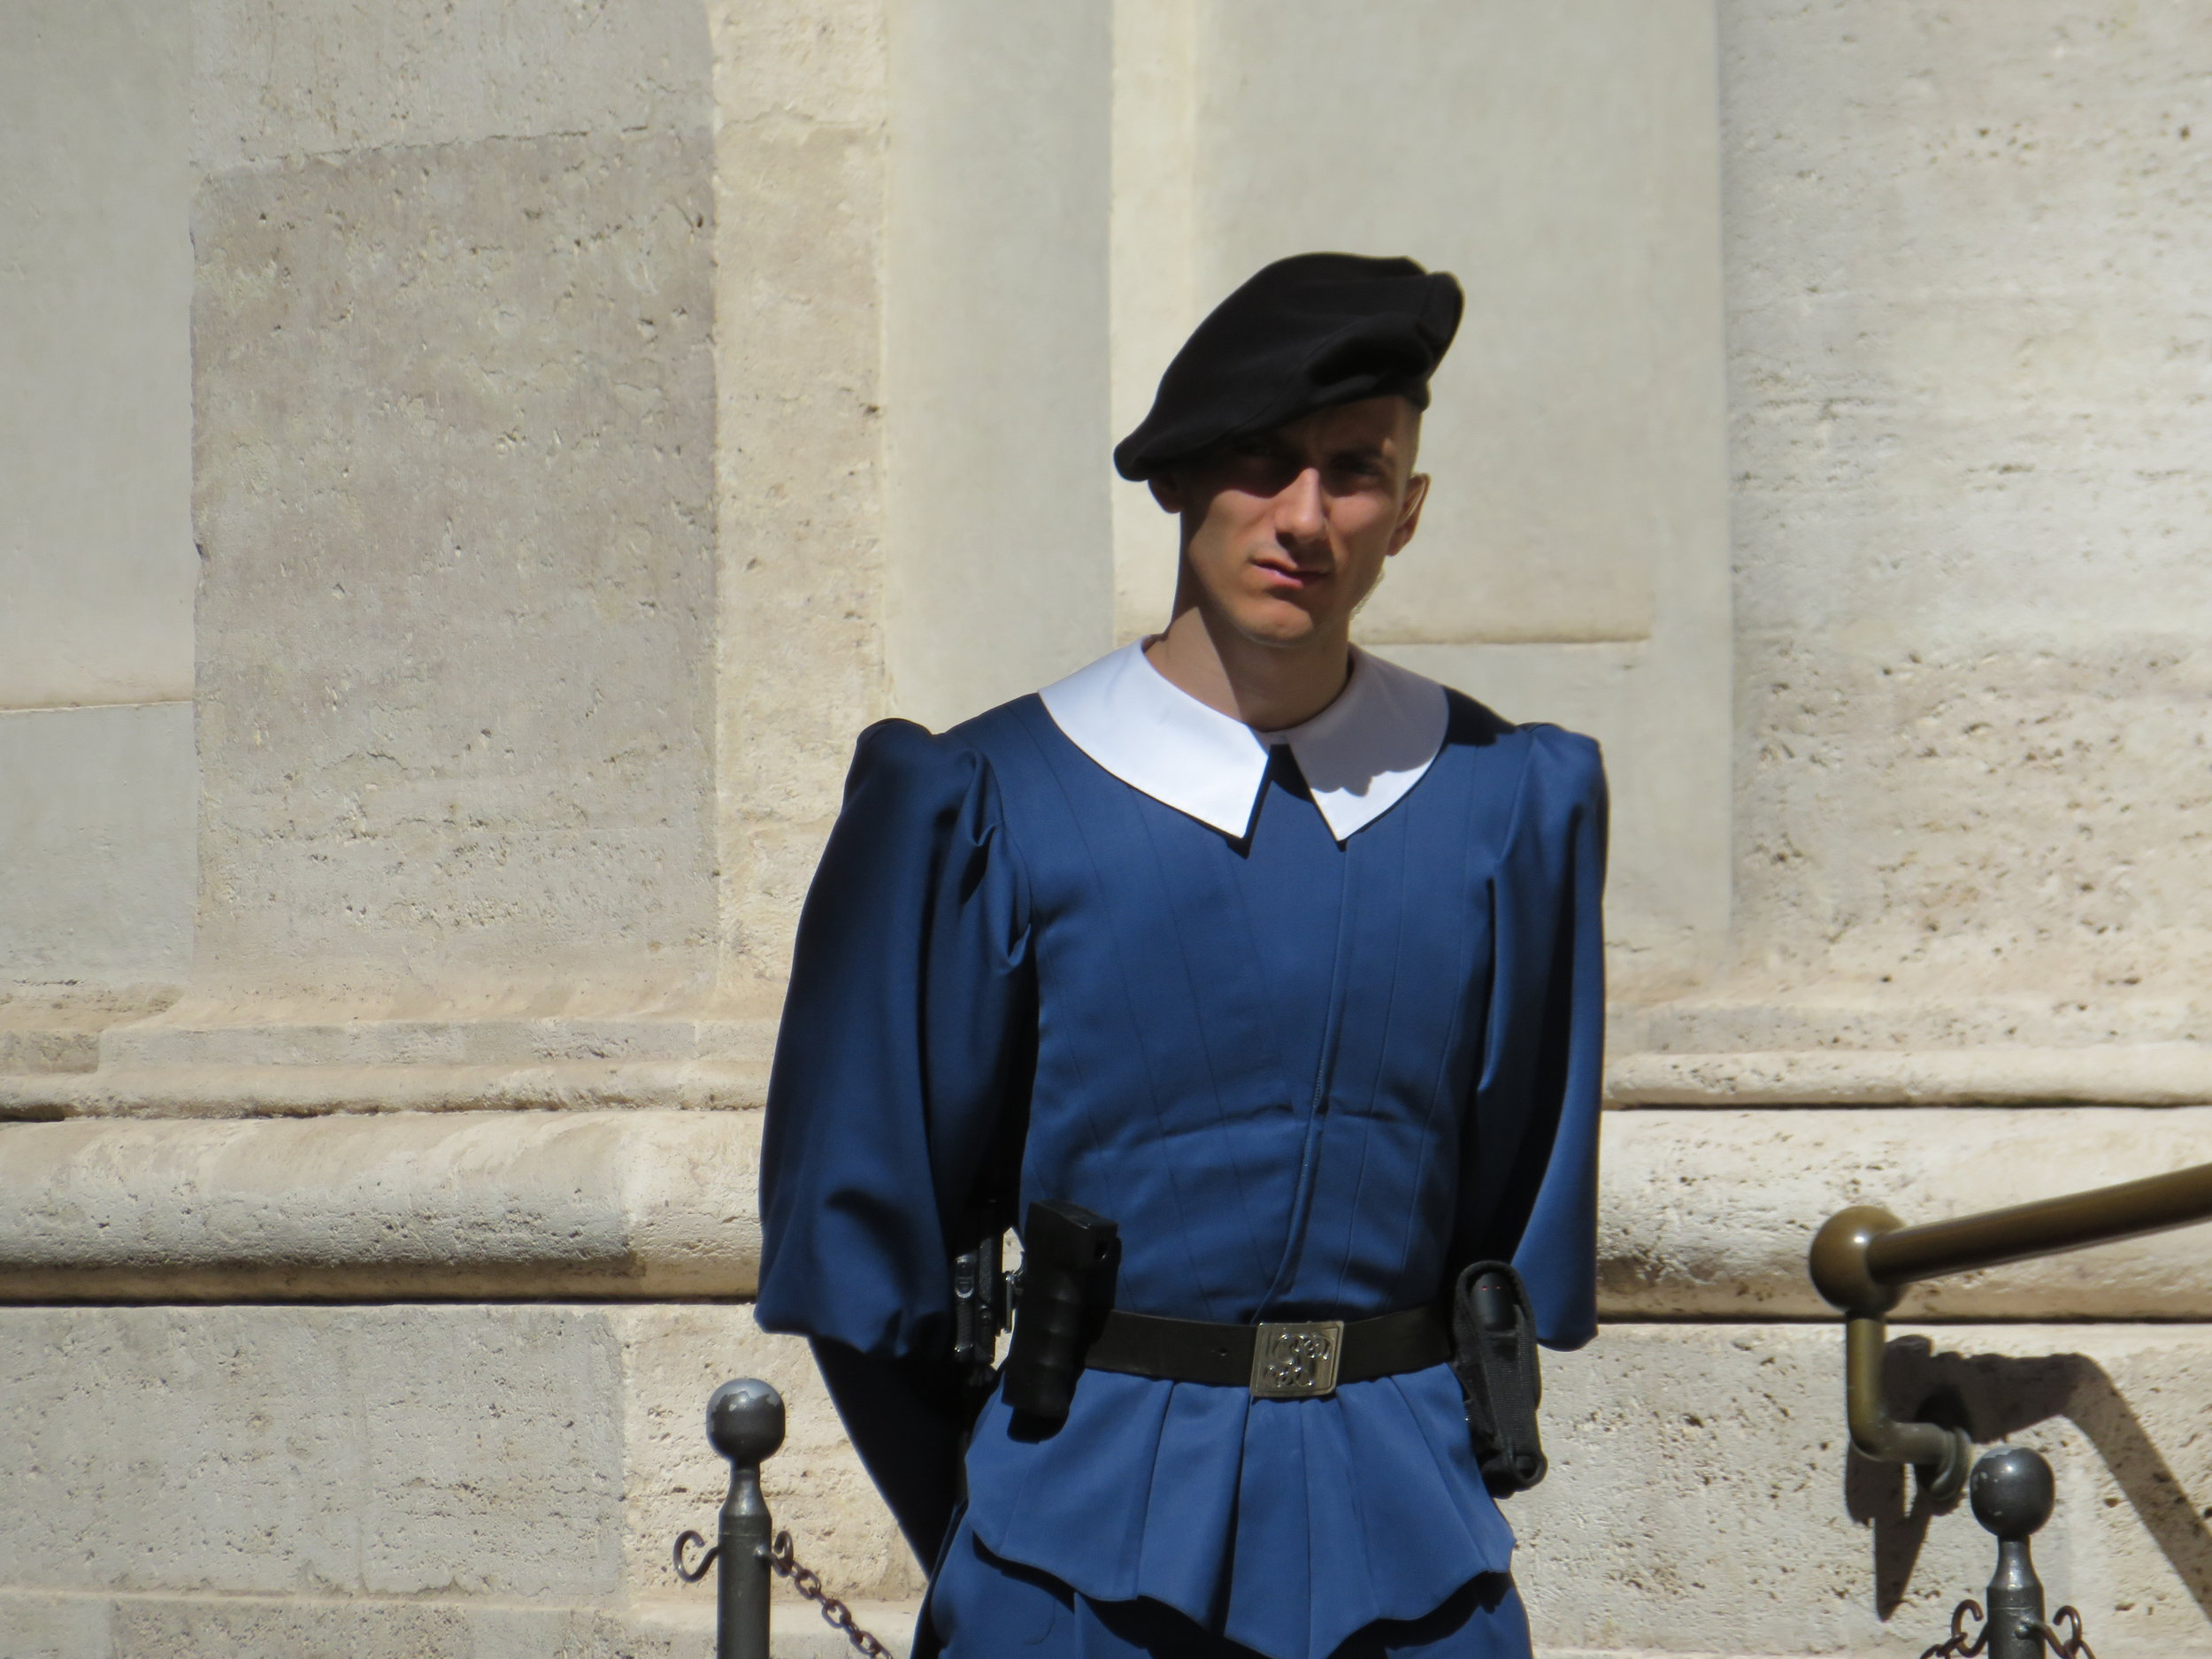 We spotted a Swiss Guard on duty outside the square. The  Pontifical Swiss Guard  has acted as the military for the Vatican City since 1506.